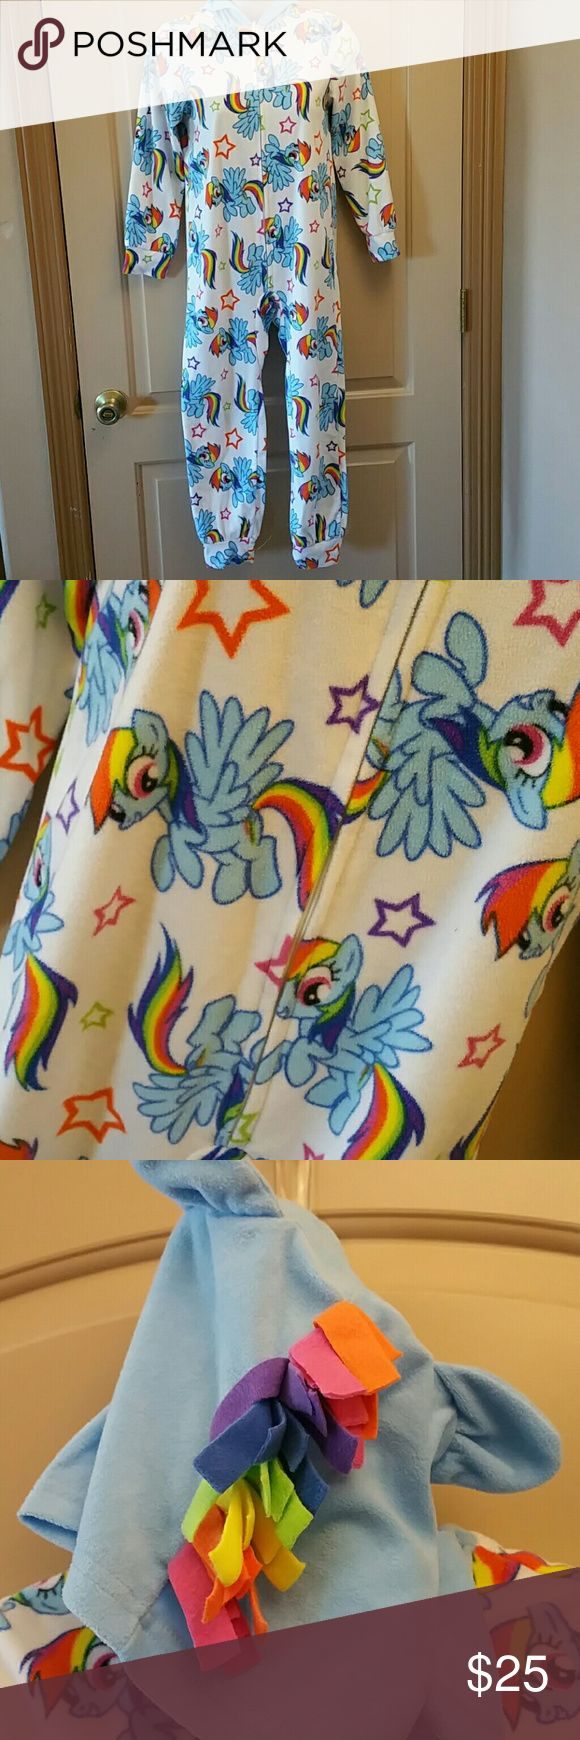 My Little Pony Rainbow Dash Pijama / Costume - Lg What girl wouldnt want to be Rainbow Dash anytime she pleases? This My Little Pony Rainbow Dash Pijama /costume is perfect just for that. It's a thick fleece material thus making it comfy and cozy for indoors yet durable for outdoors. It even has a Hoodia complete with a rainbow mohawk! Size Youth Large (8-14). My Little Pony Pajamas